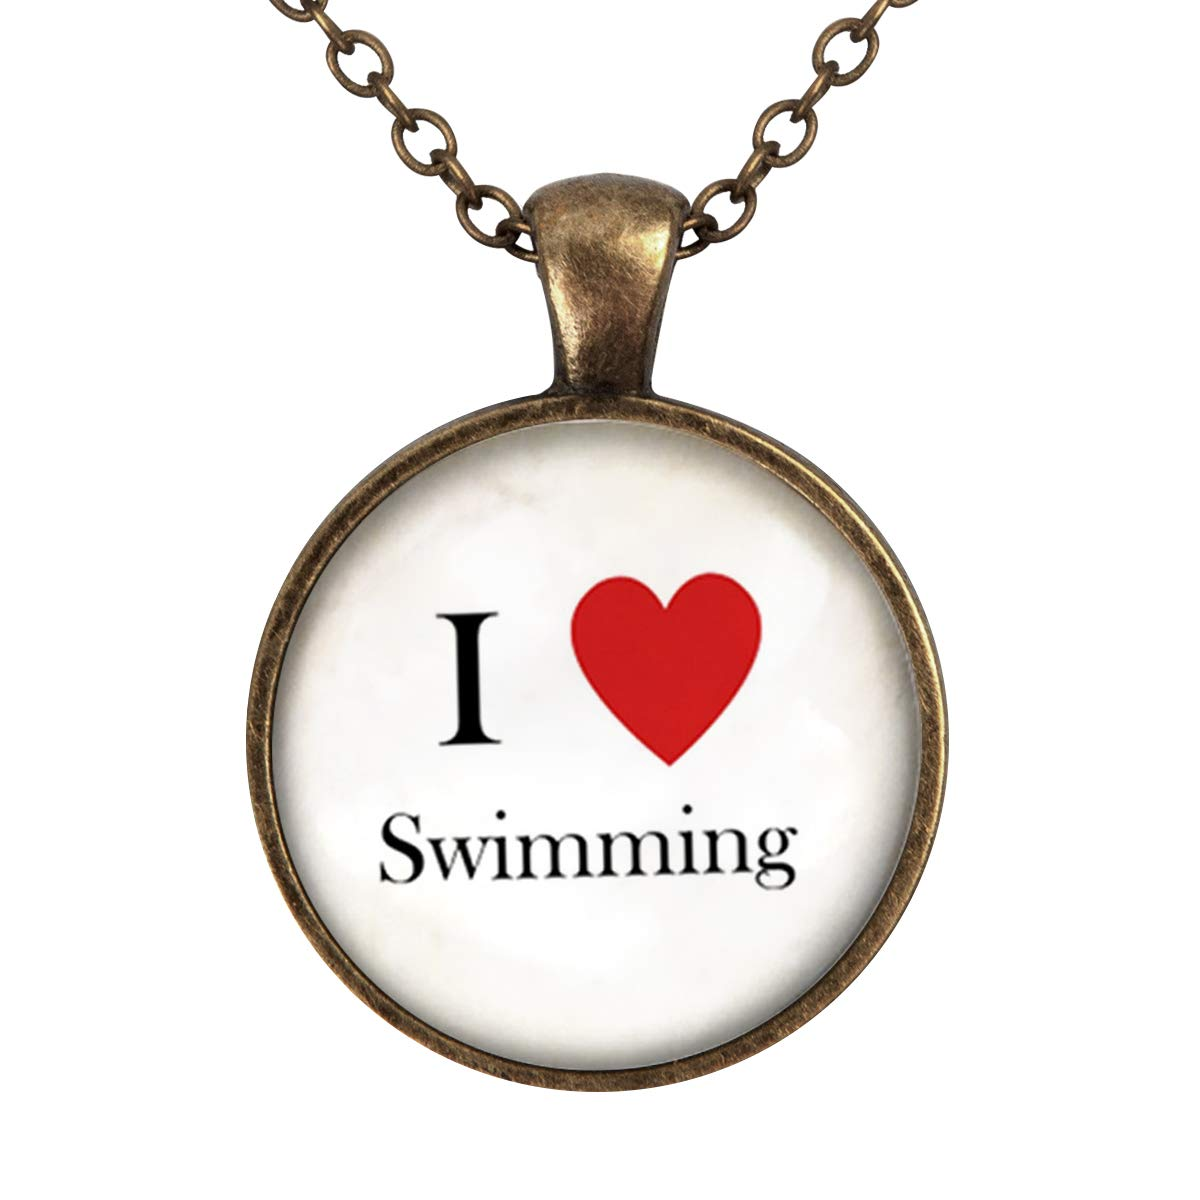 Family Decor I Love Swimming Custom Pendant Necklace Cabochon Glass Vintage Bronze Chain Necklace Jewelry Handmade